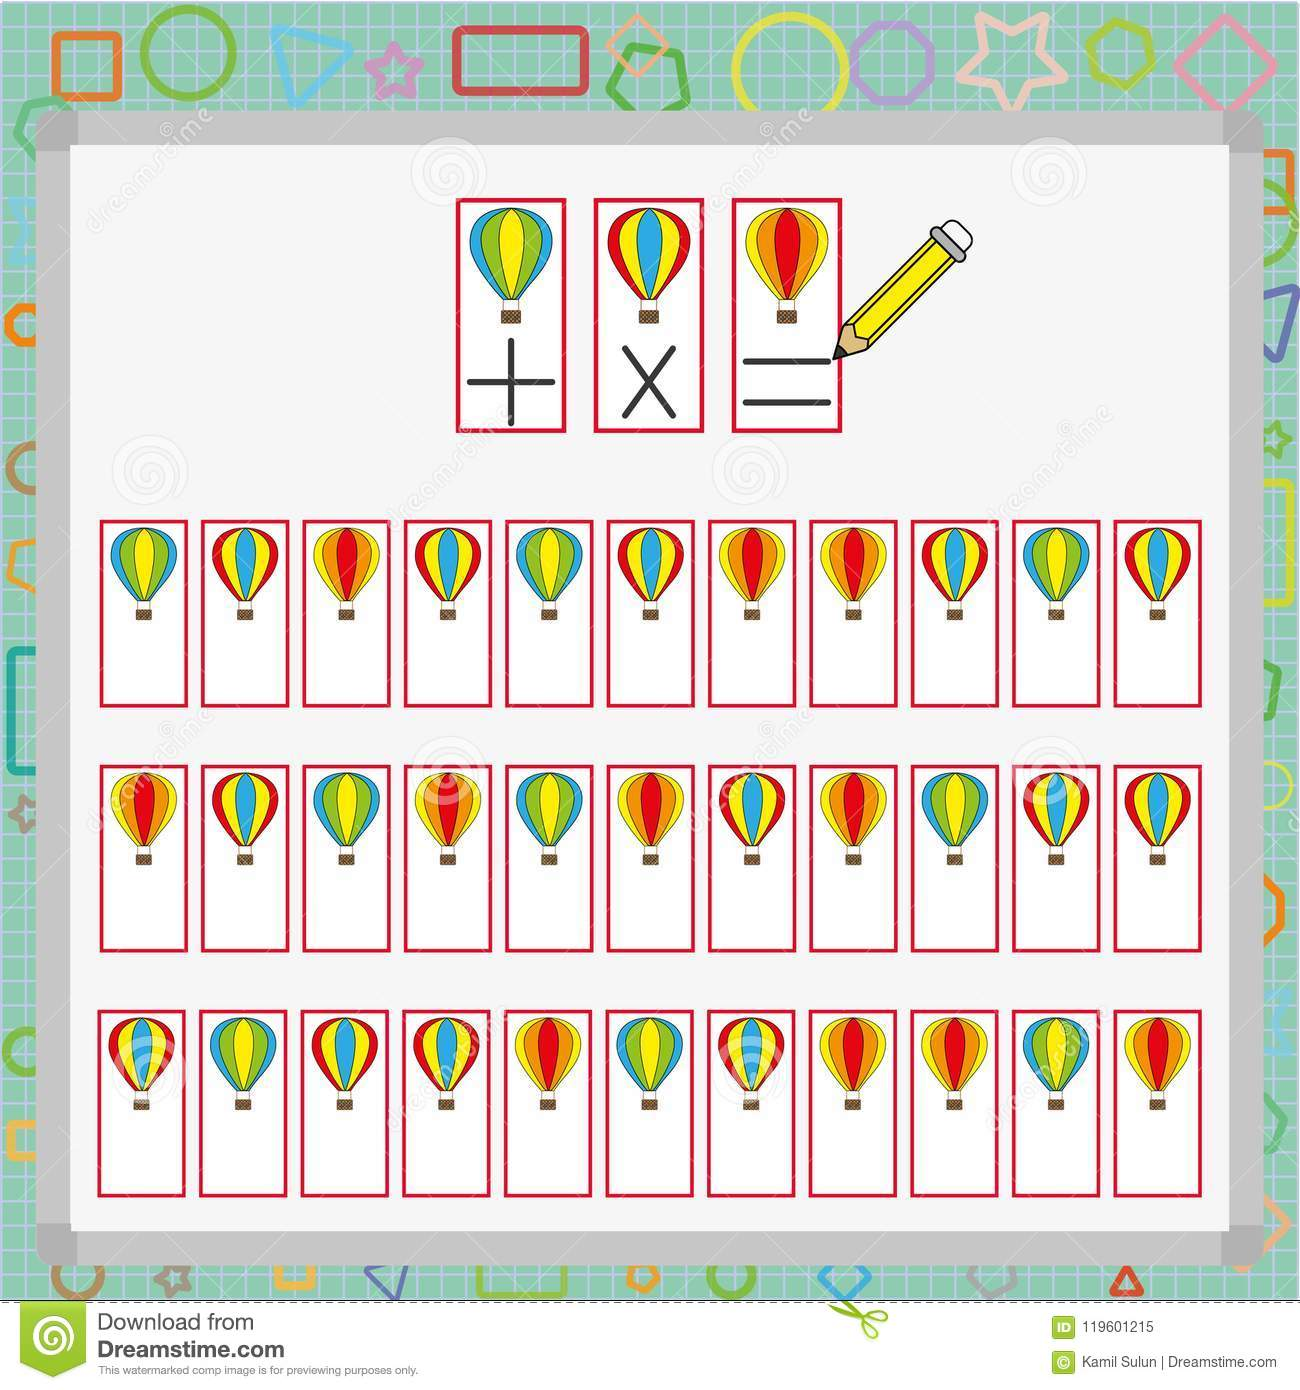 Visual Perception Game Perception Game For Child